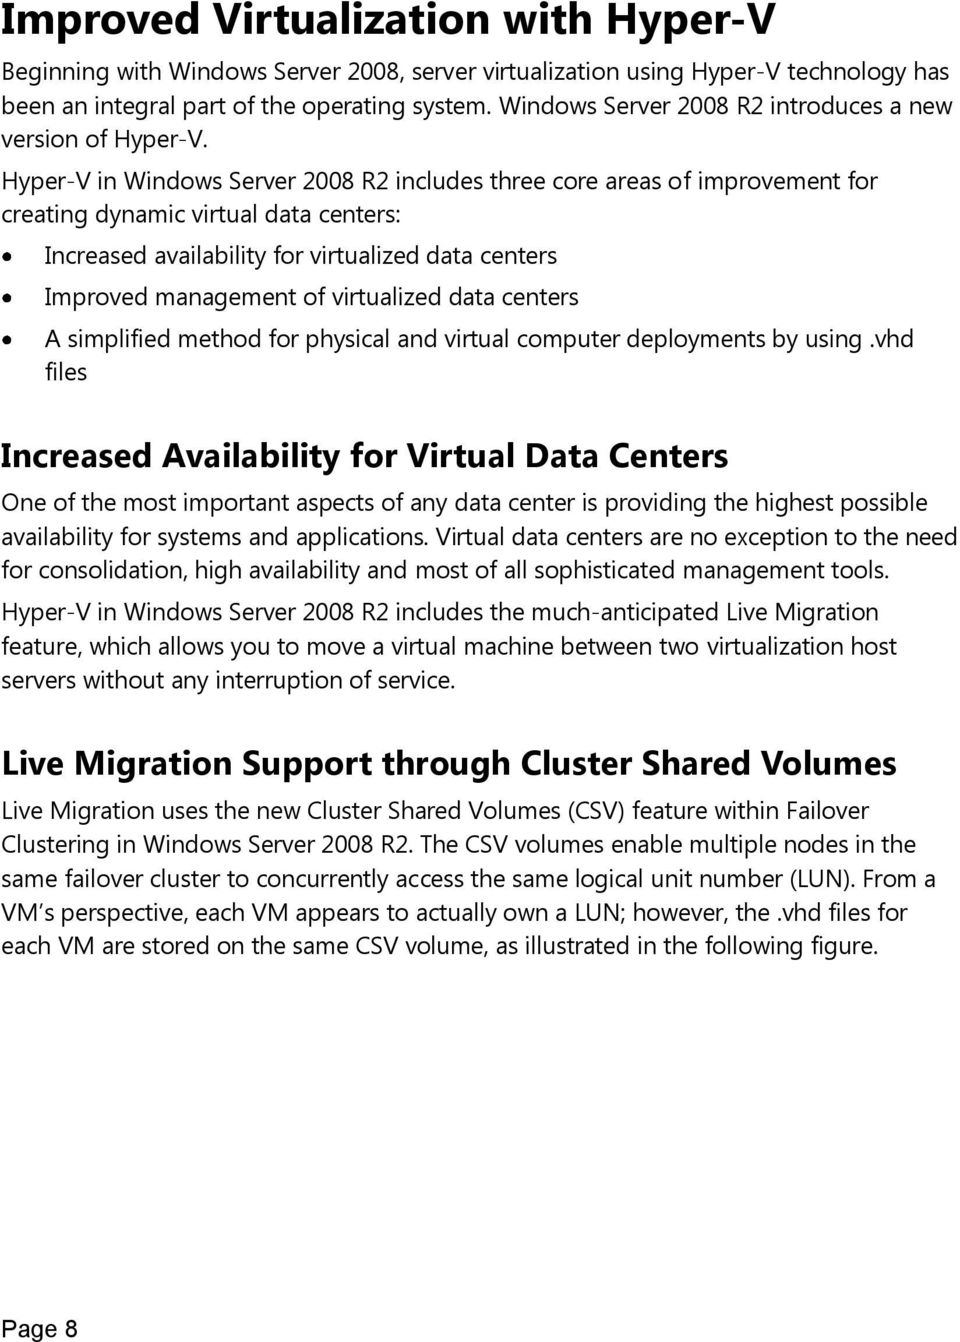 Hyper-V in Windows Server 2008 R2 includes three core areas of improvement for creating dynamic virtual data centers: Increased availability for virtualized data centers Improved management of